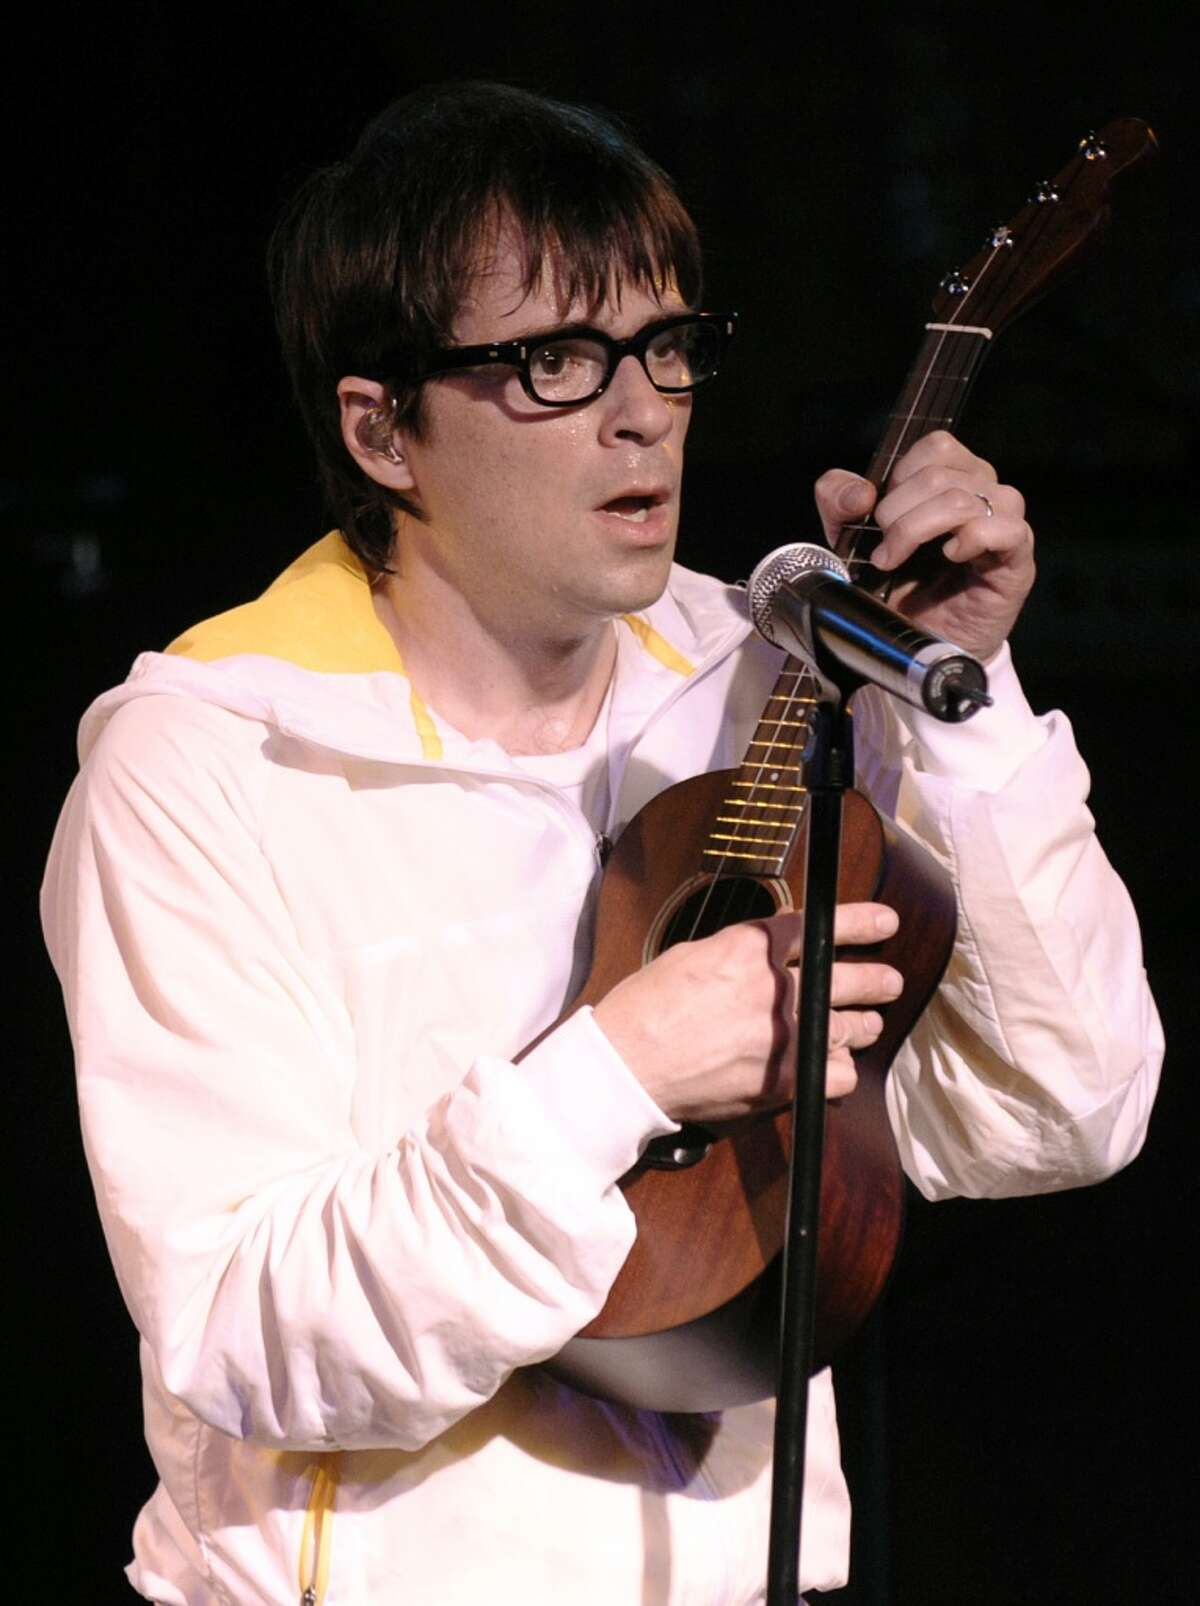 Festival first-timers Weezer (pictured), Wilco, the String Cheese Incident, Ben Harper & the Innocent Criminals, and Preservation Hall Jazz Band will make their Vibes debut this weekend among 22 first-timers. More about the bands performing at the Vibes this year.